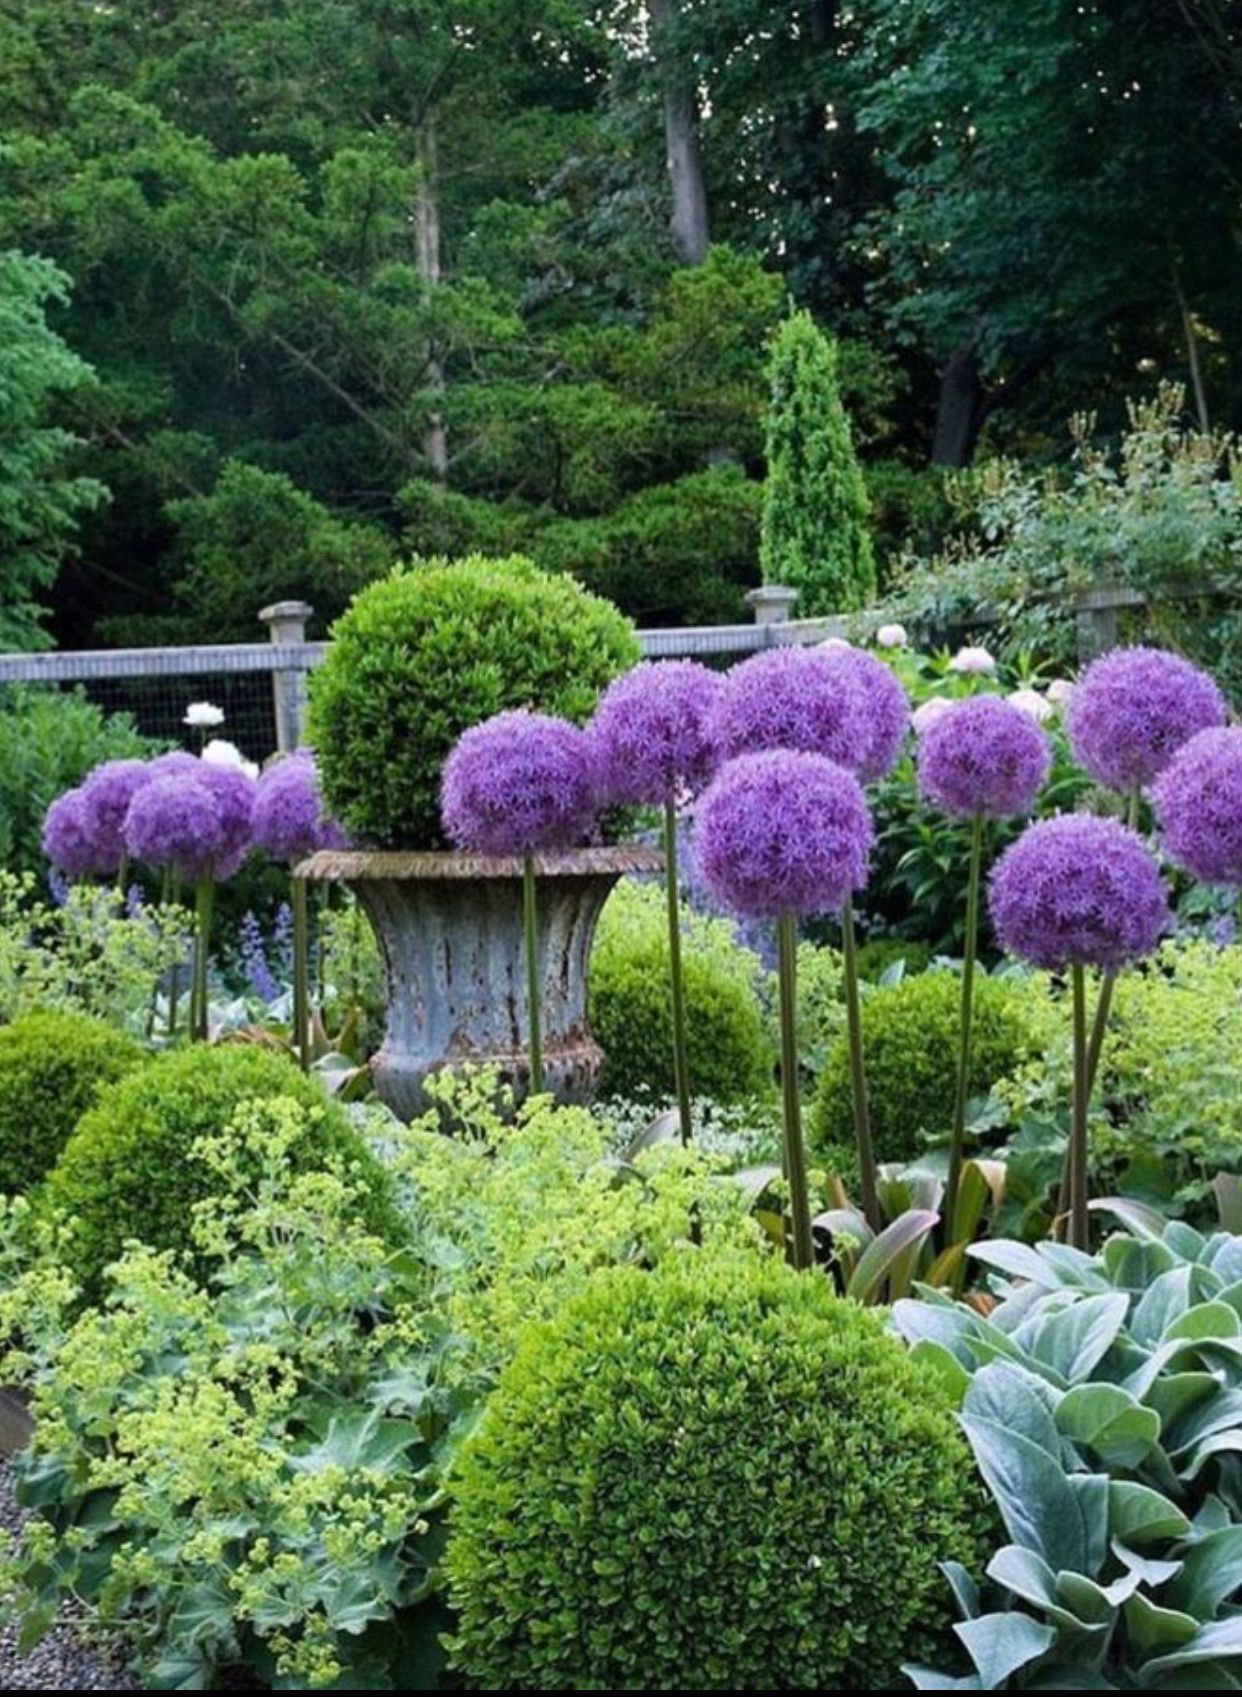 Pin by Vicky View on Urn Pinterest Gardens Landscaping